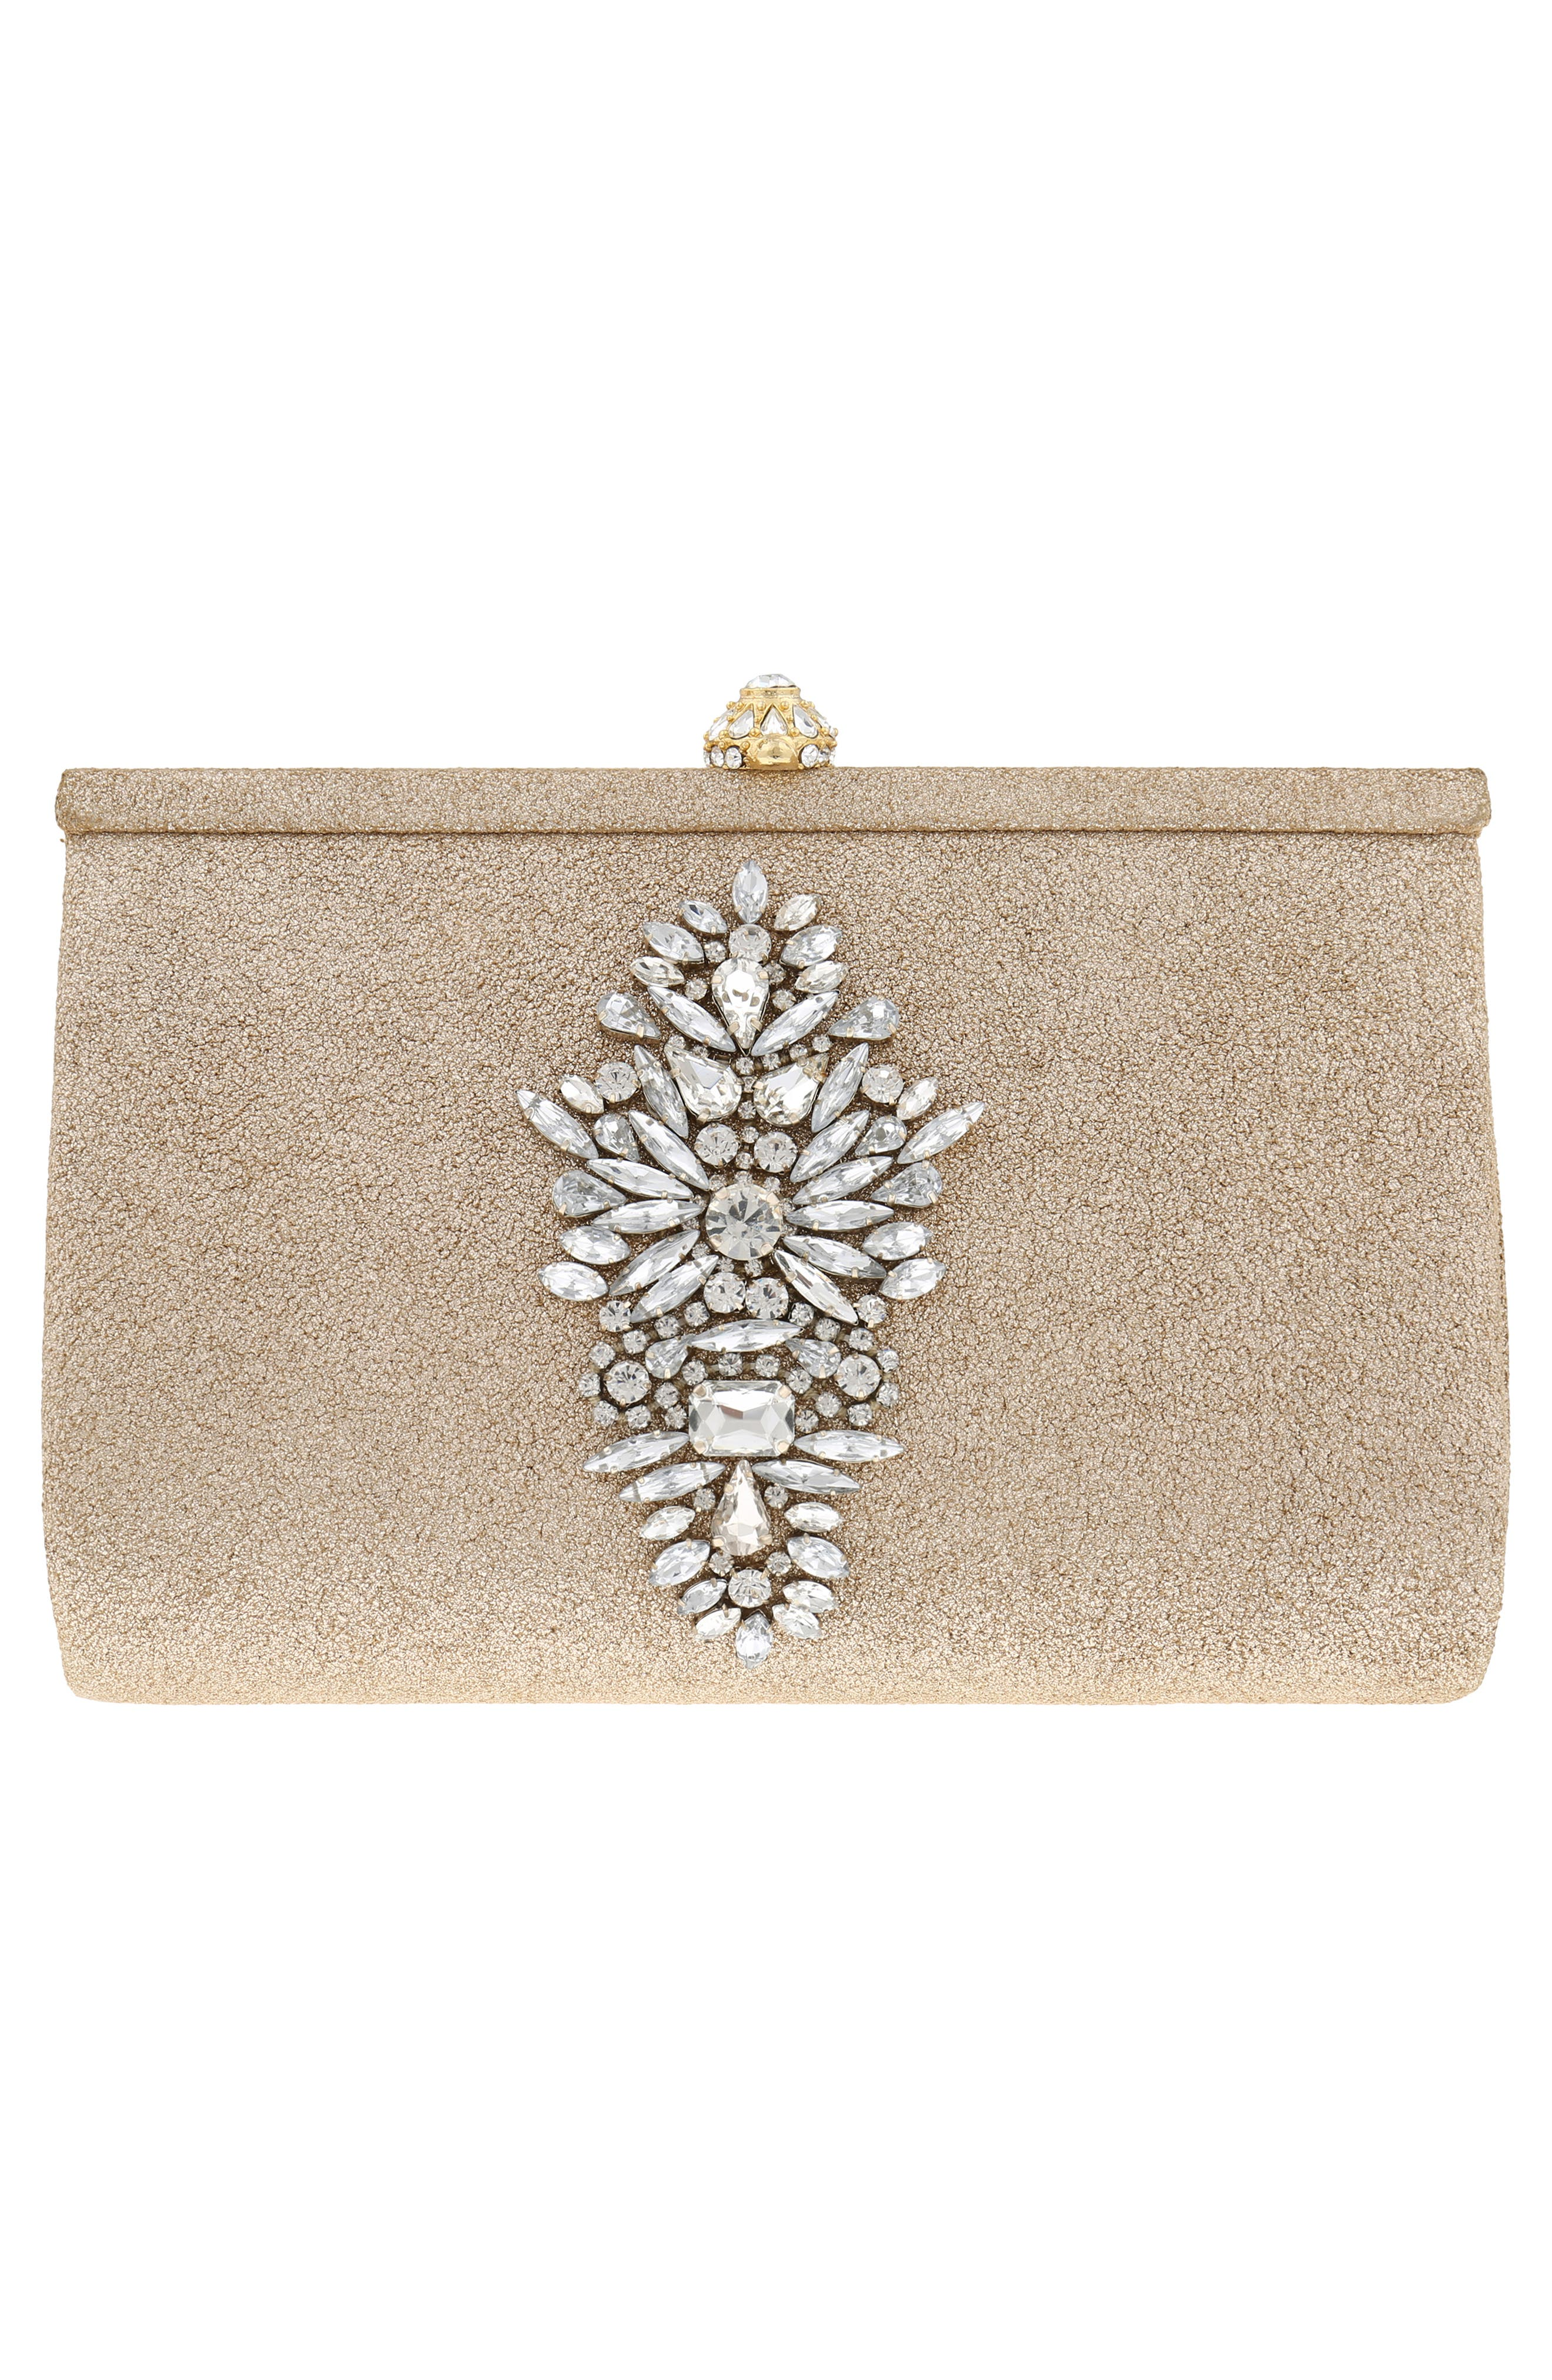 Galaxy Embellished Clutch,                             Alternate thumbnail 3, color,                             Platino